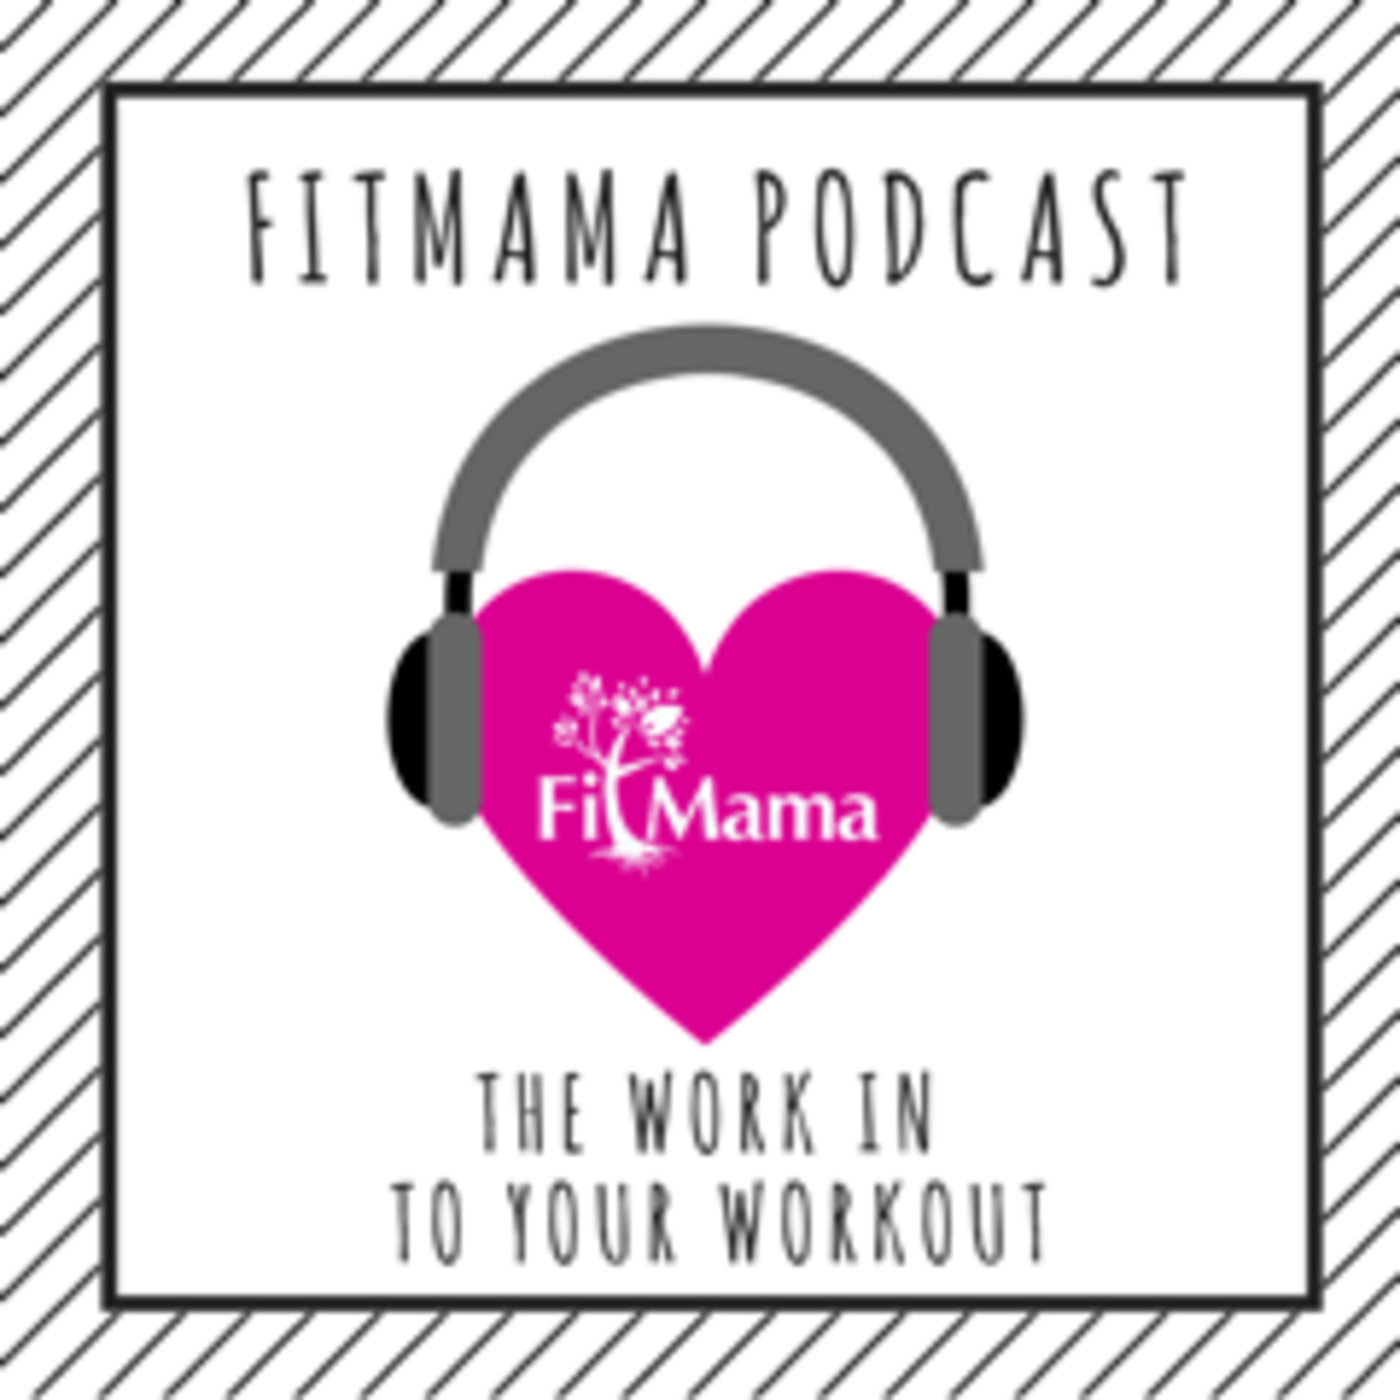 EP013: A day in the Life of a FitMama